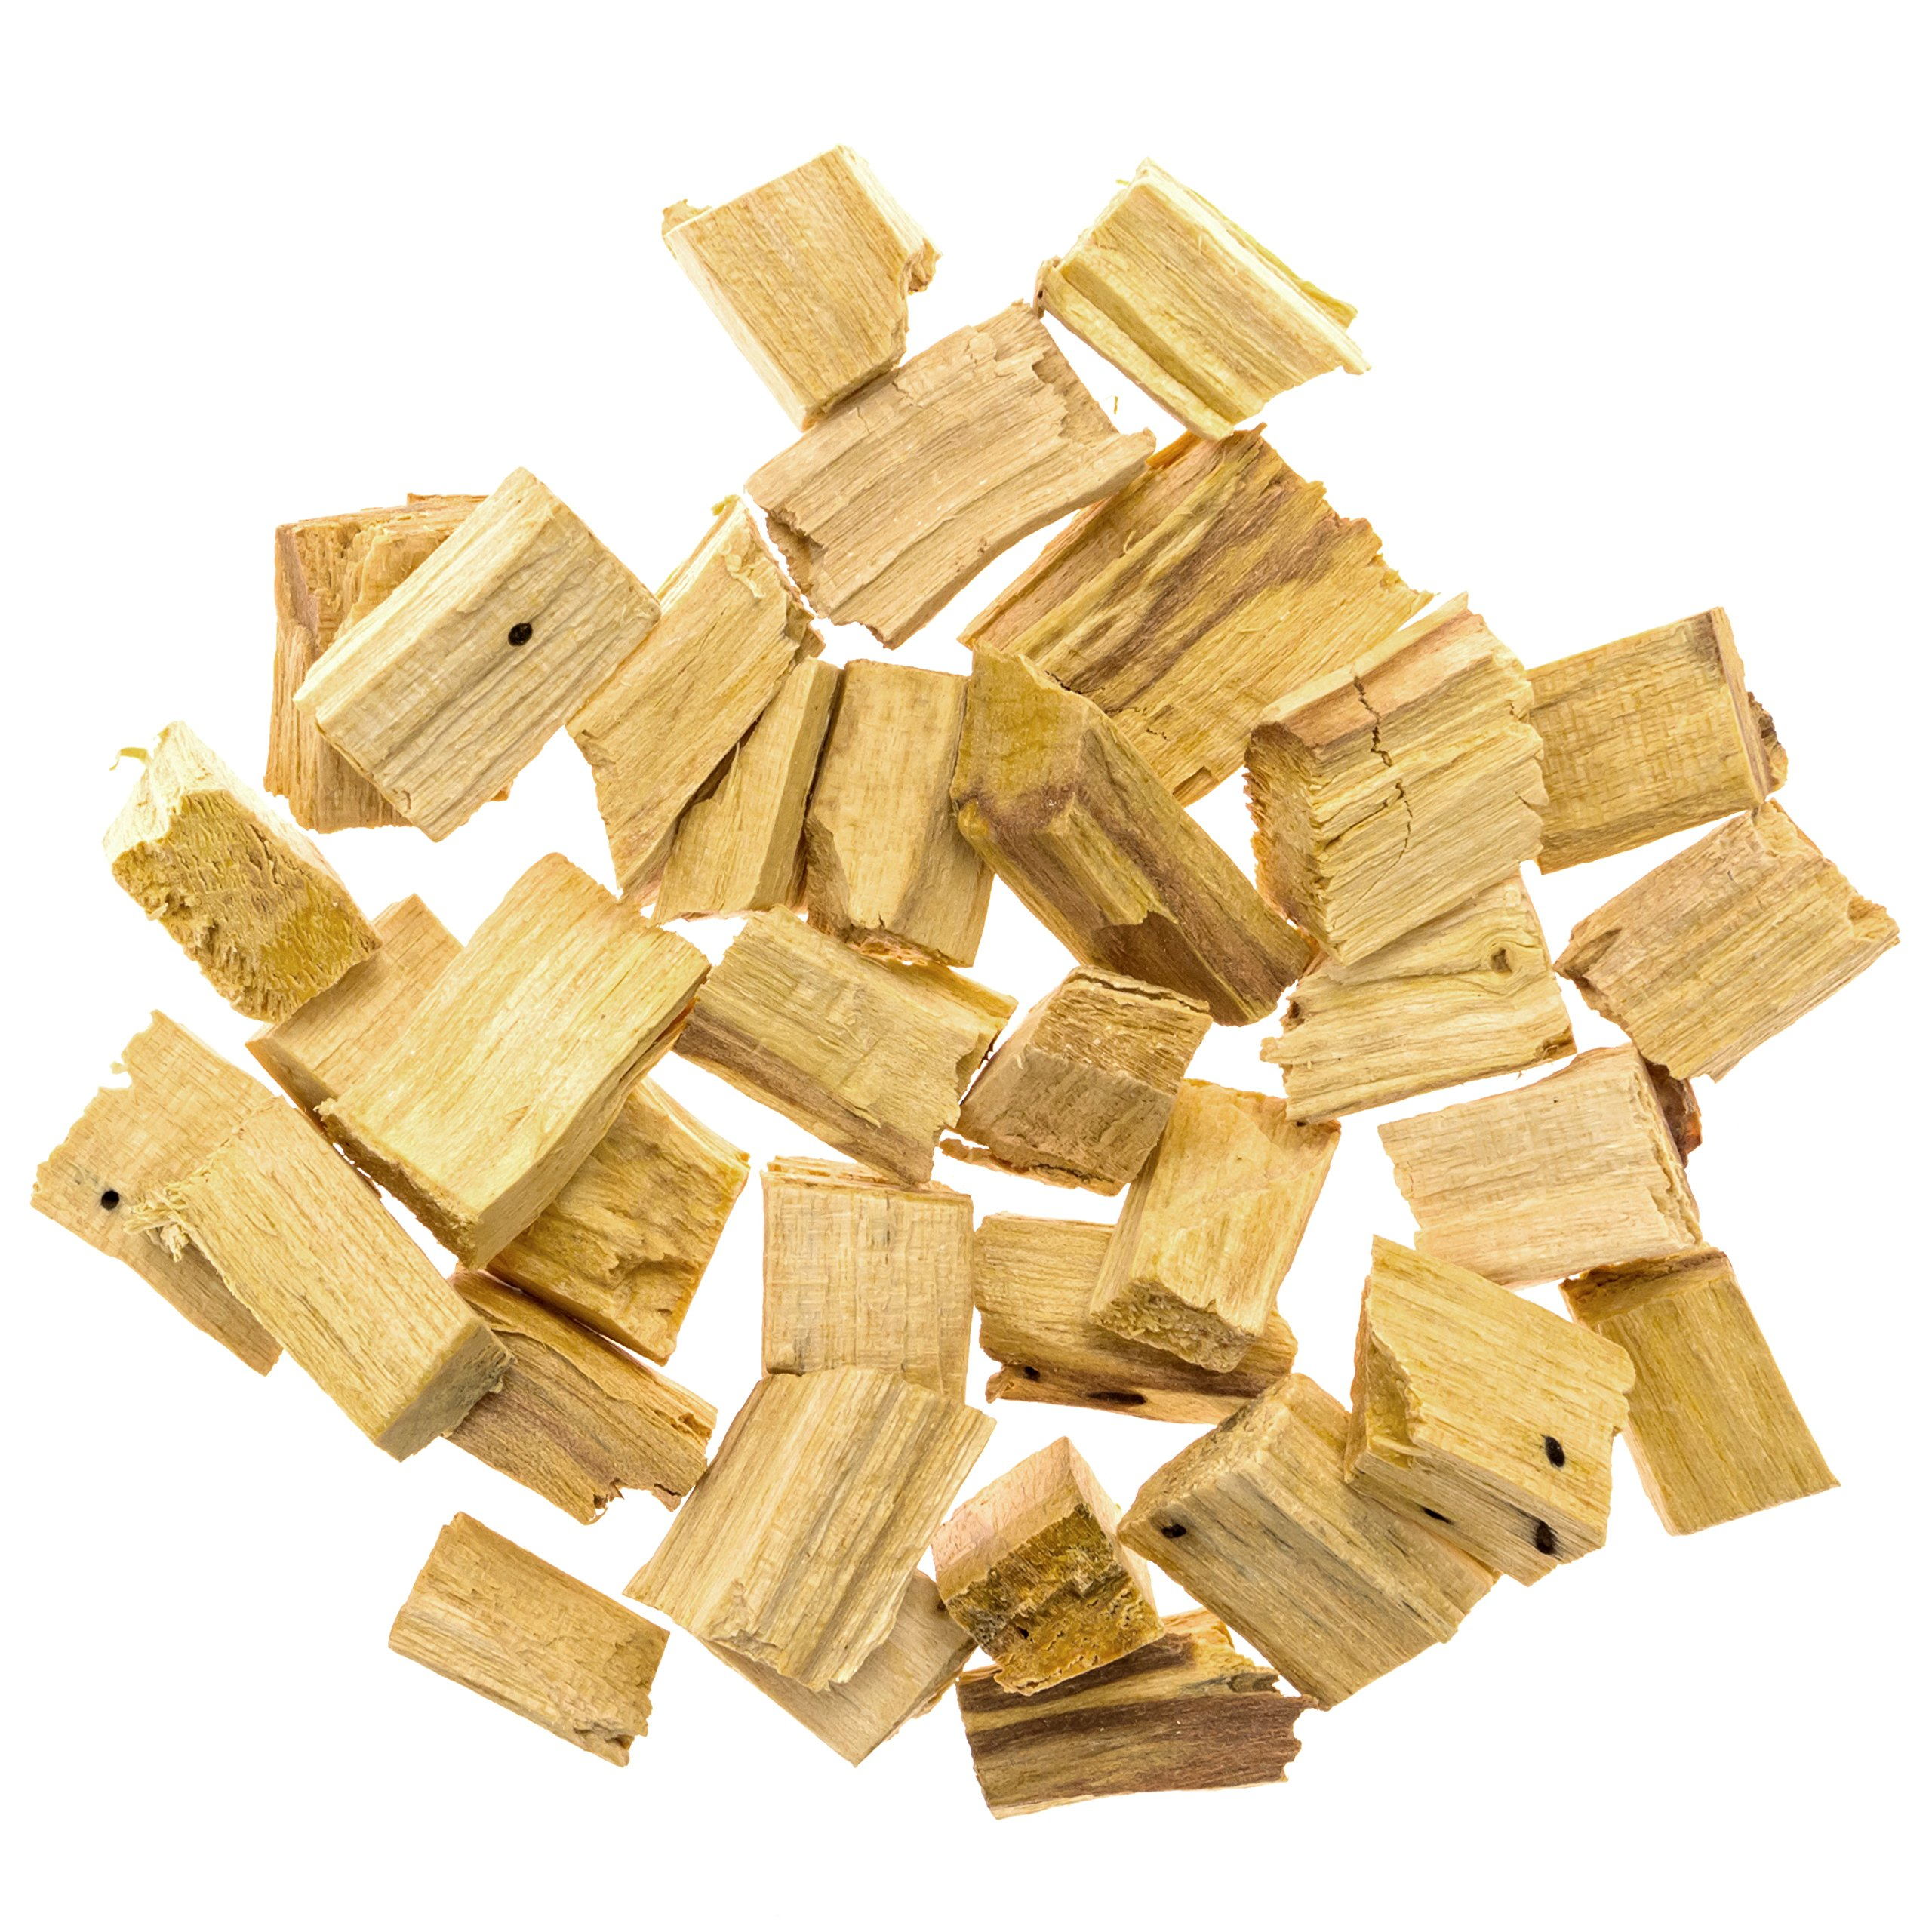 Alternative Imagination Premium Palo Santo Holy Wood Incense Chips, for Purifying, Cleansing, Healing, Meditating, Stress Relief. 100% Natural and Sustainable, Wild Harvested. (1/2 Pound)